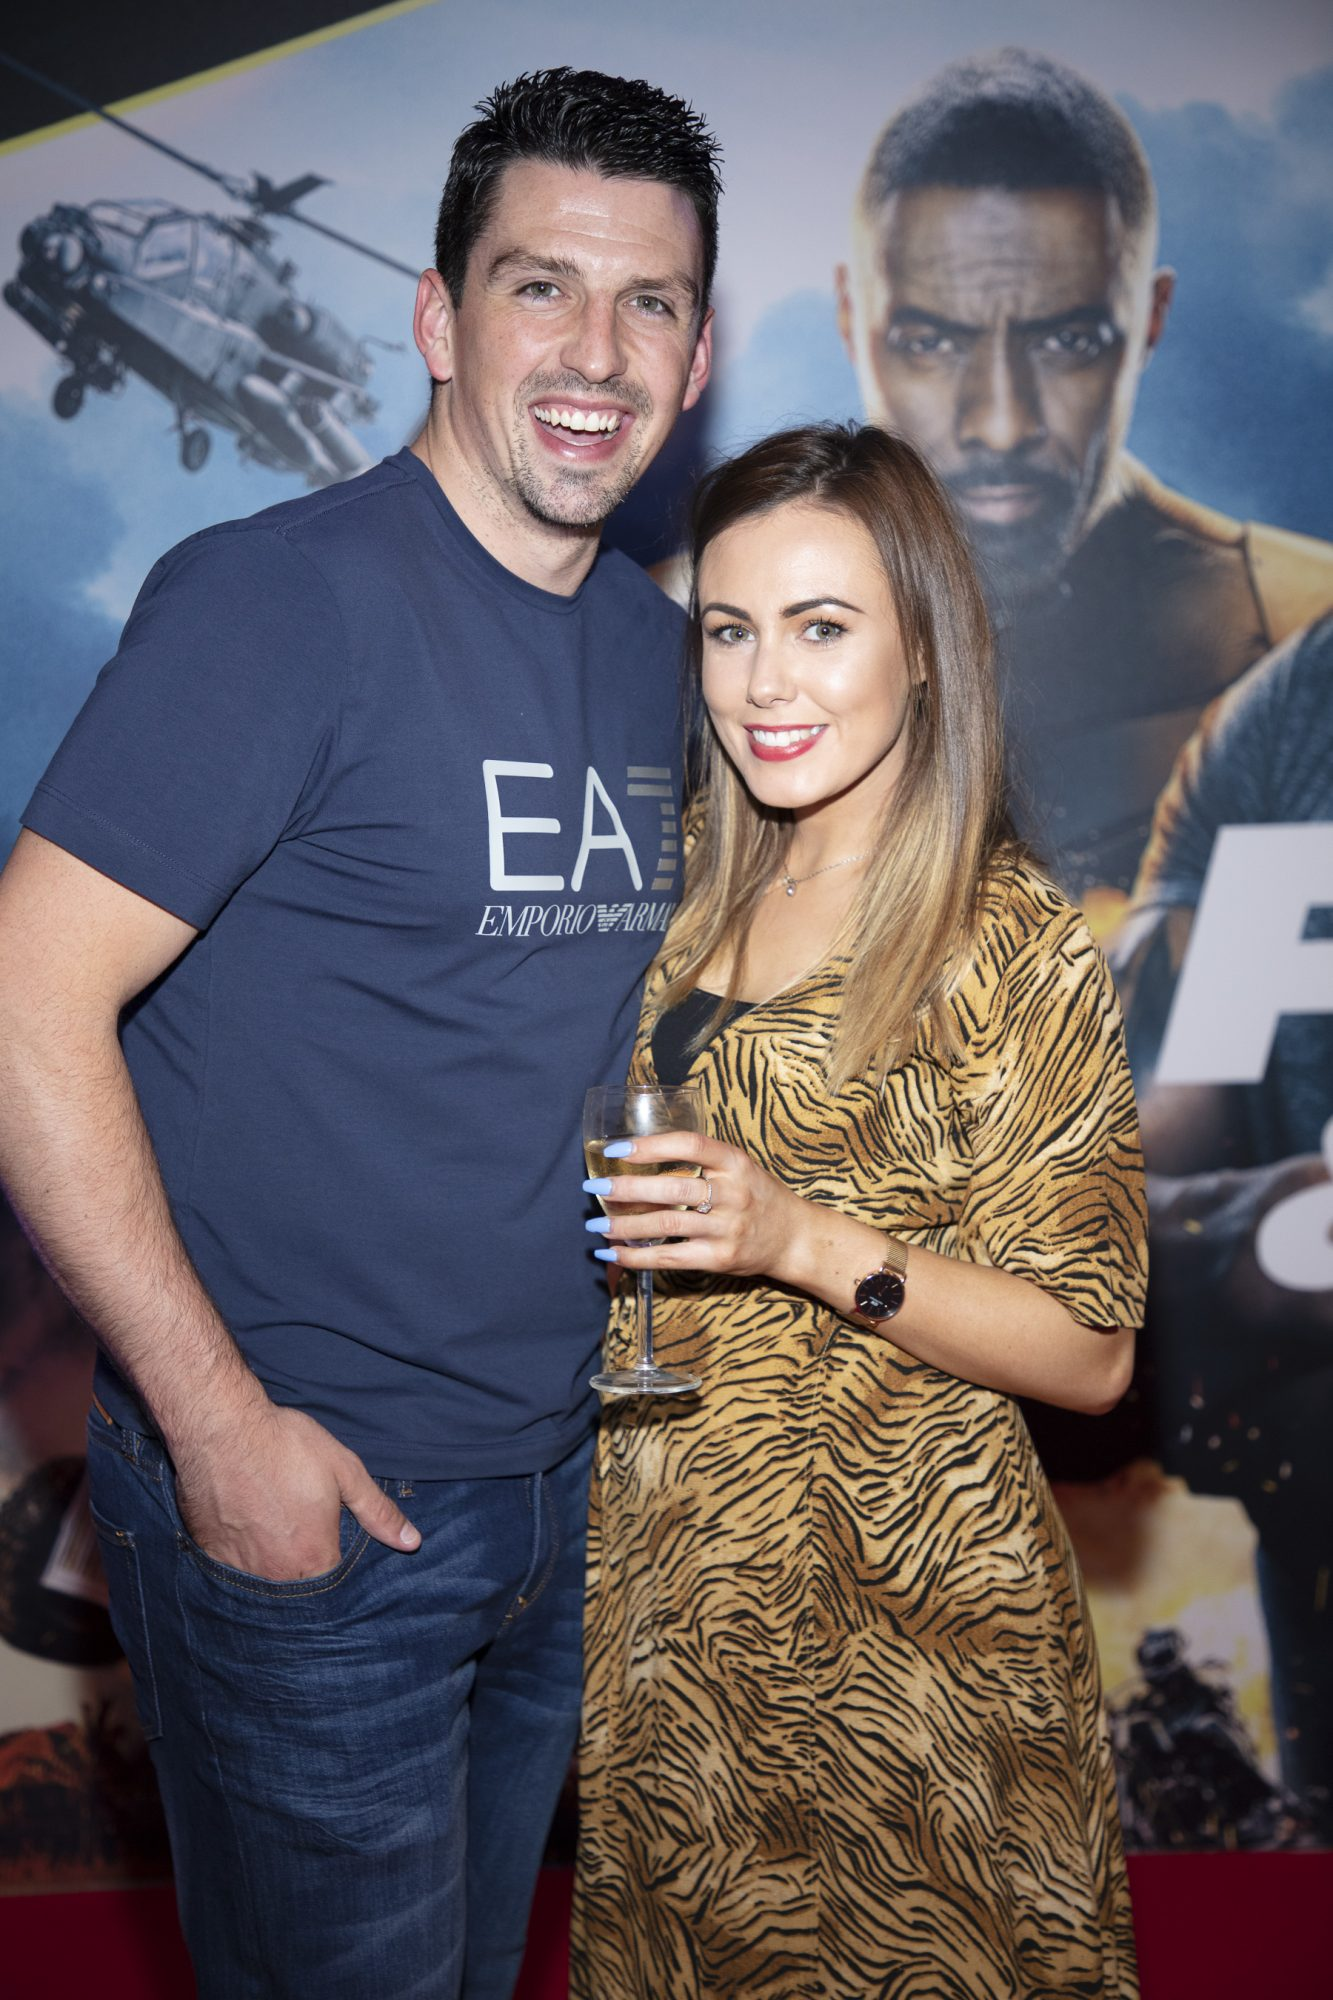 Paul Kelly & Denise Doran pictured at a special preview screening of Fast & Furious Presents: Hobbs & Shaw. Photo: Anthony Woods